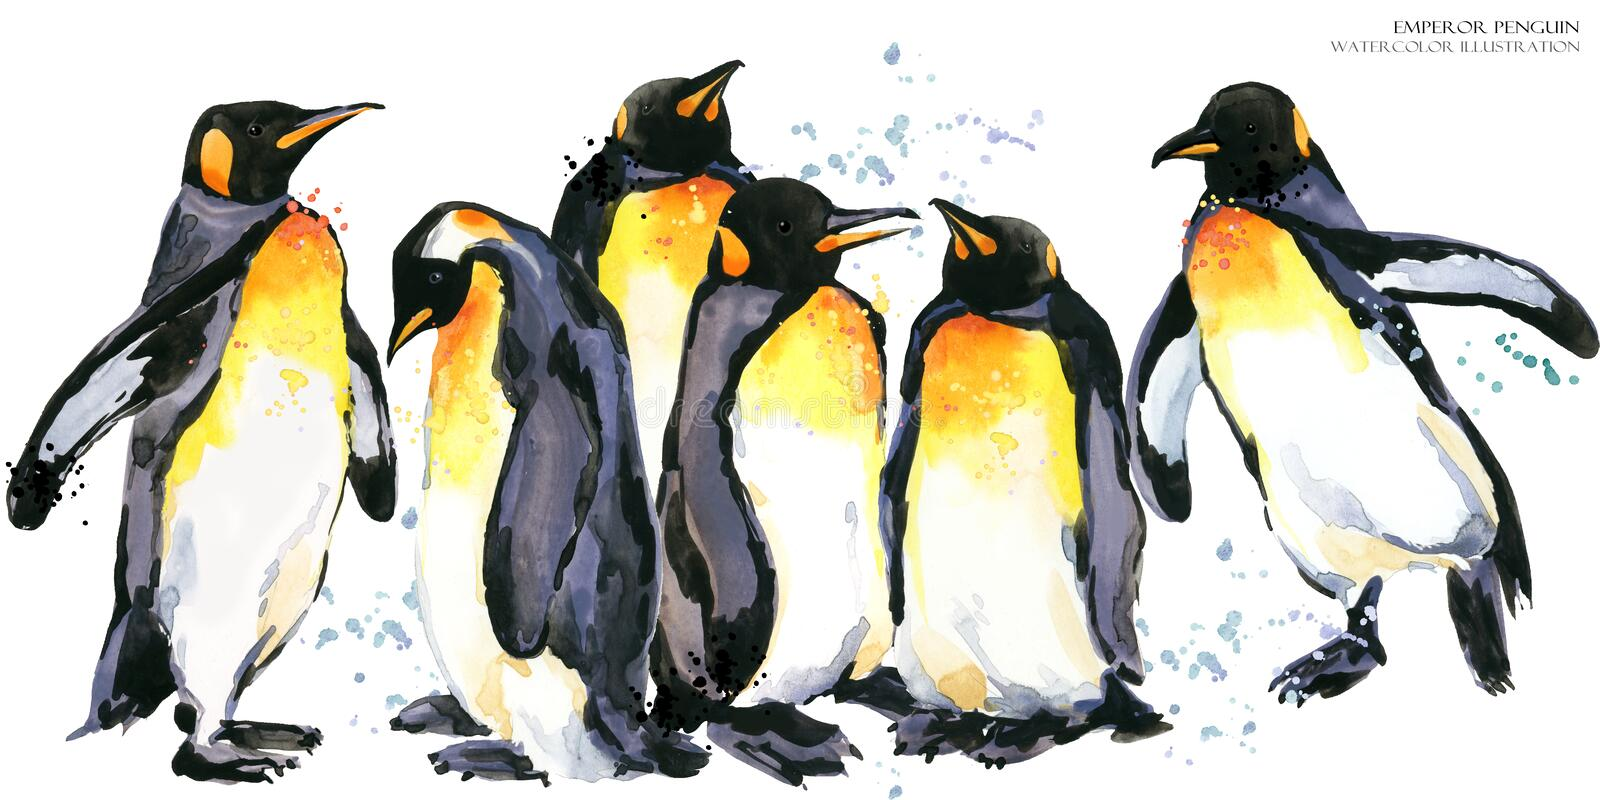 Emperor penguin set watercolor illustration. Emperor penguin watercolor illustration. wild polar animal royalty free illustration